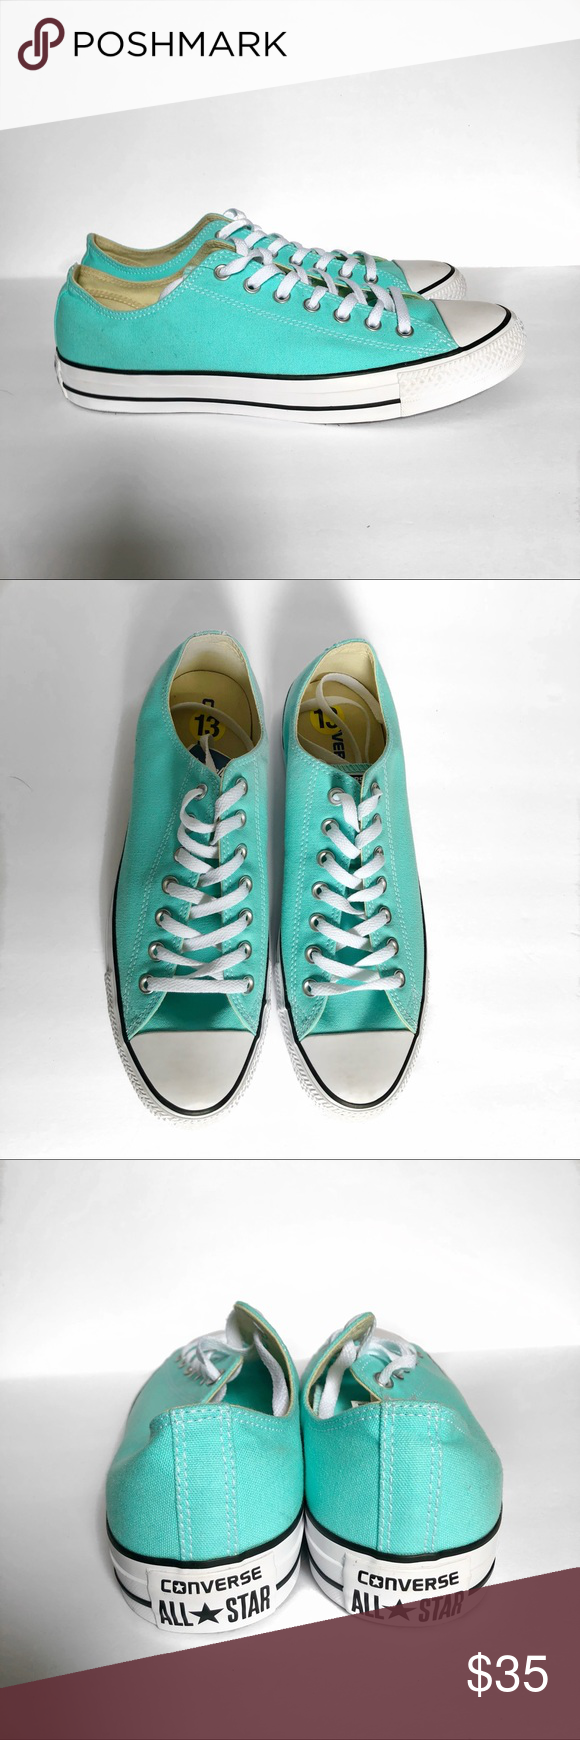 3b2b06baf0c86b NWOT Converse Light Aqua Low Top Chucks New without tags Converse Low Top  Light Aqua Chucks